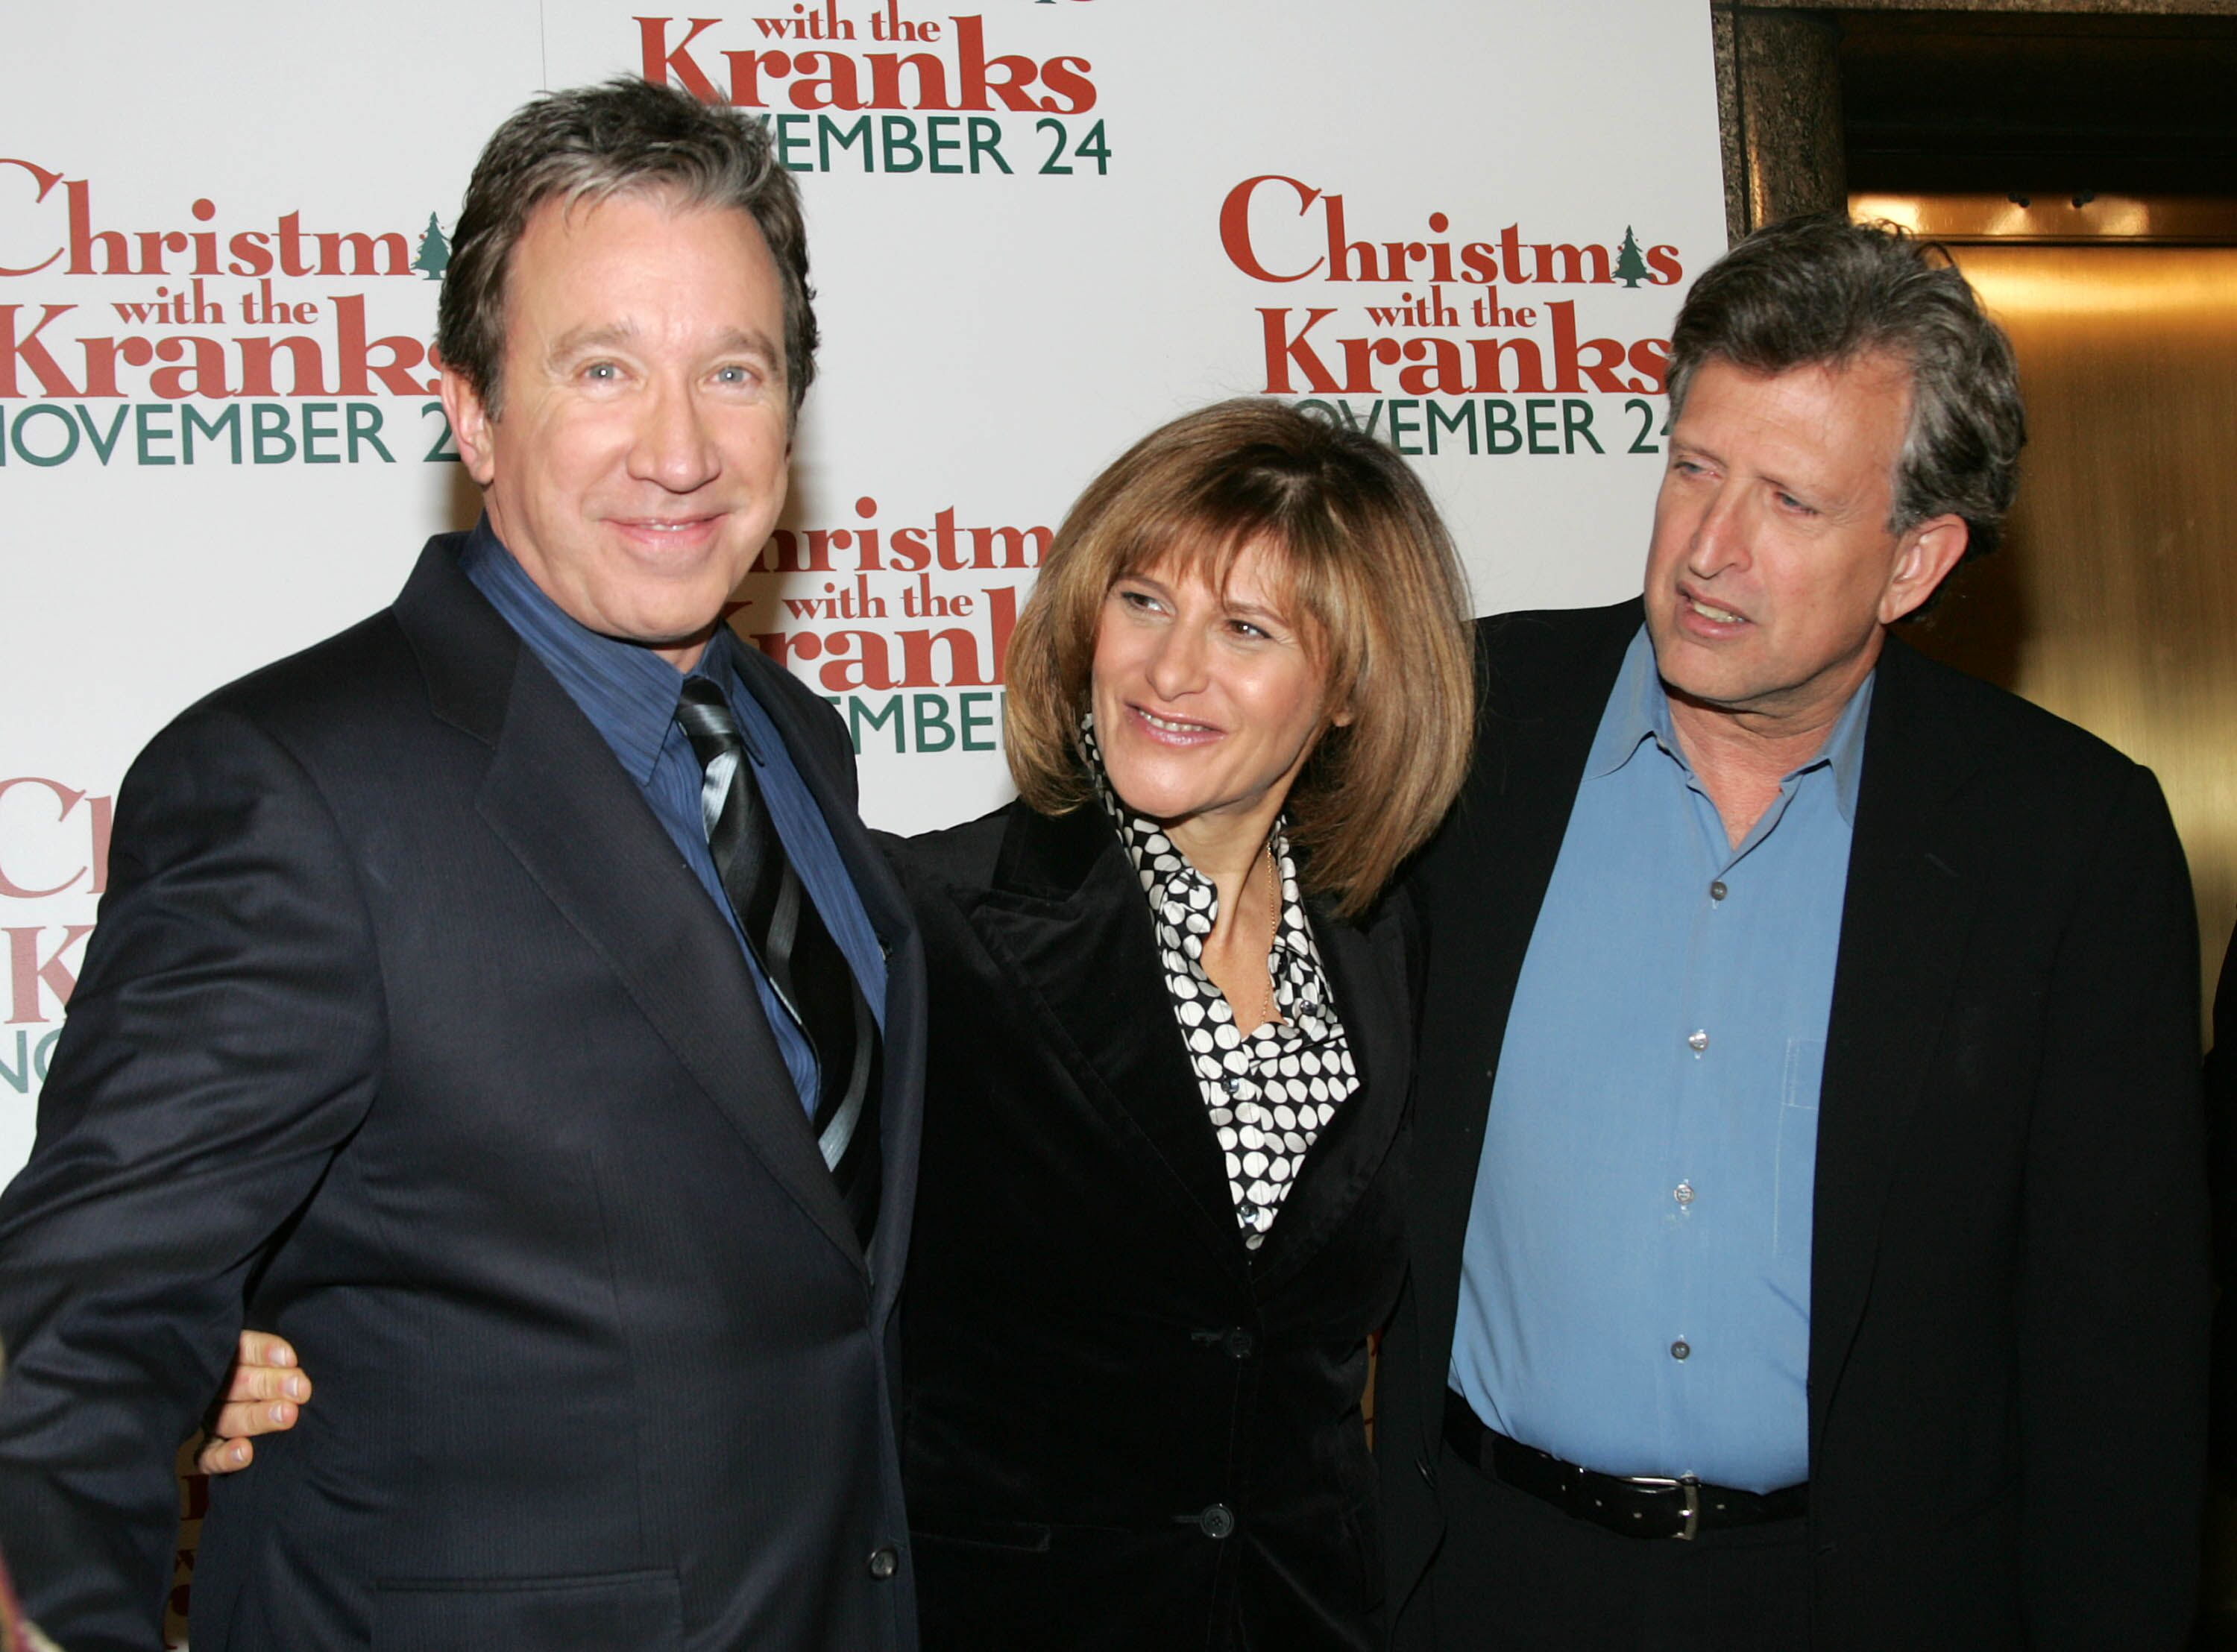 Christmas movies: Watch Christmas with the Kranks on Hulu